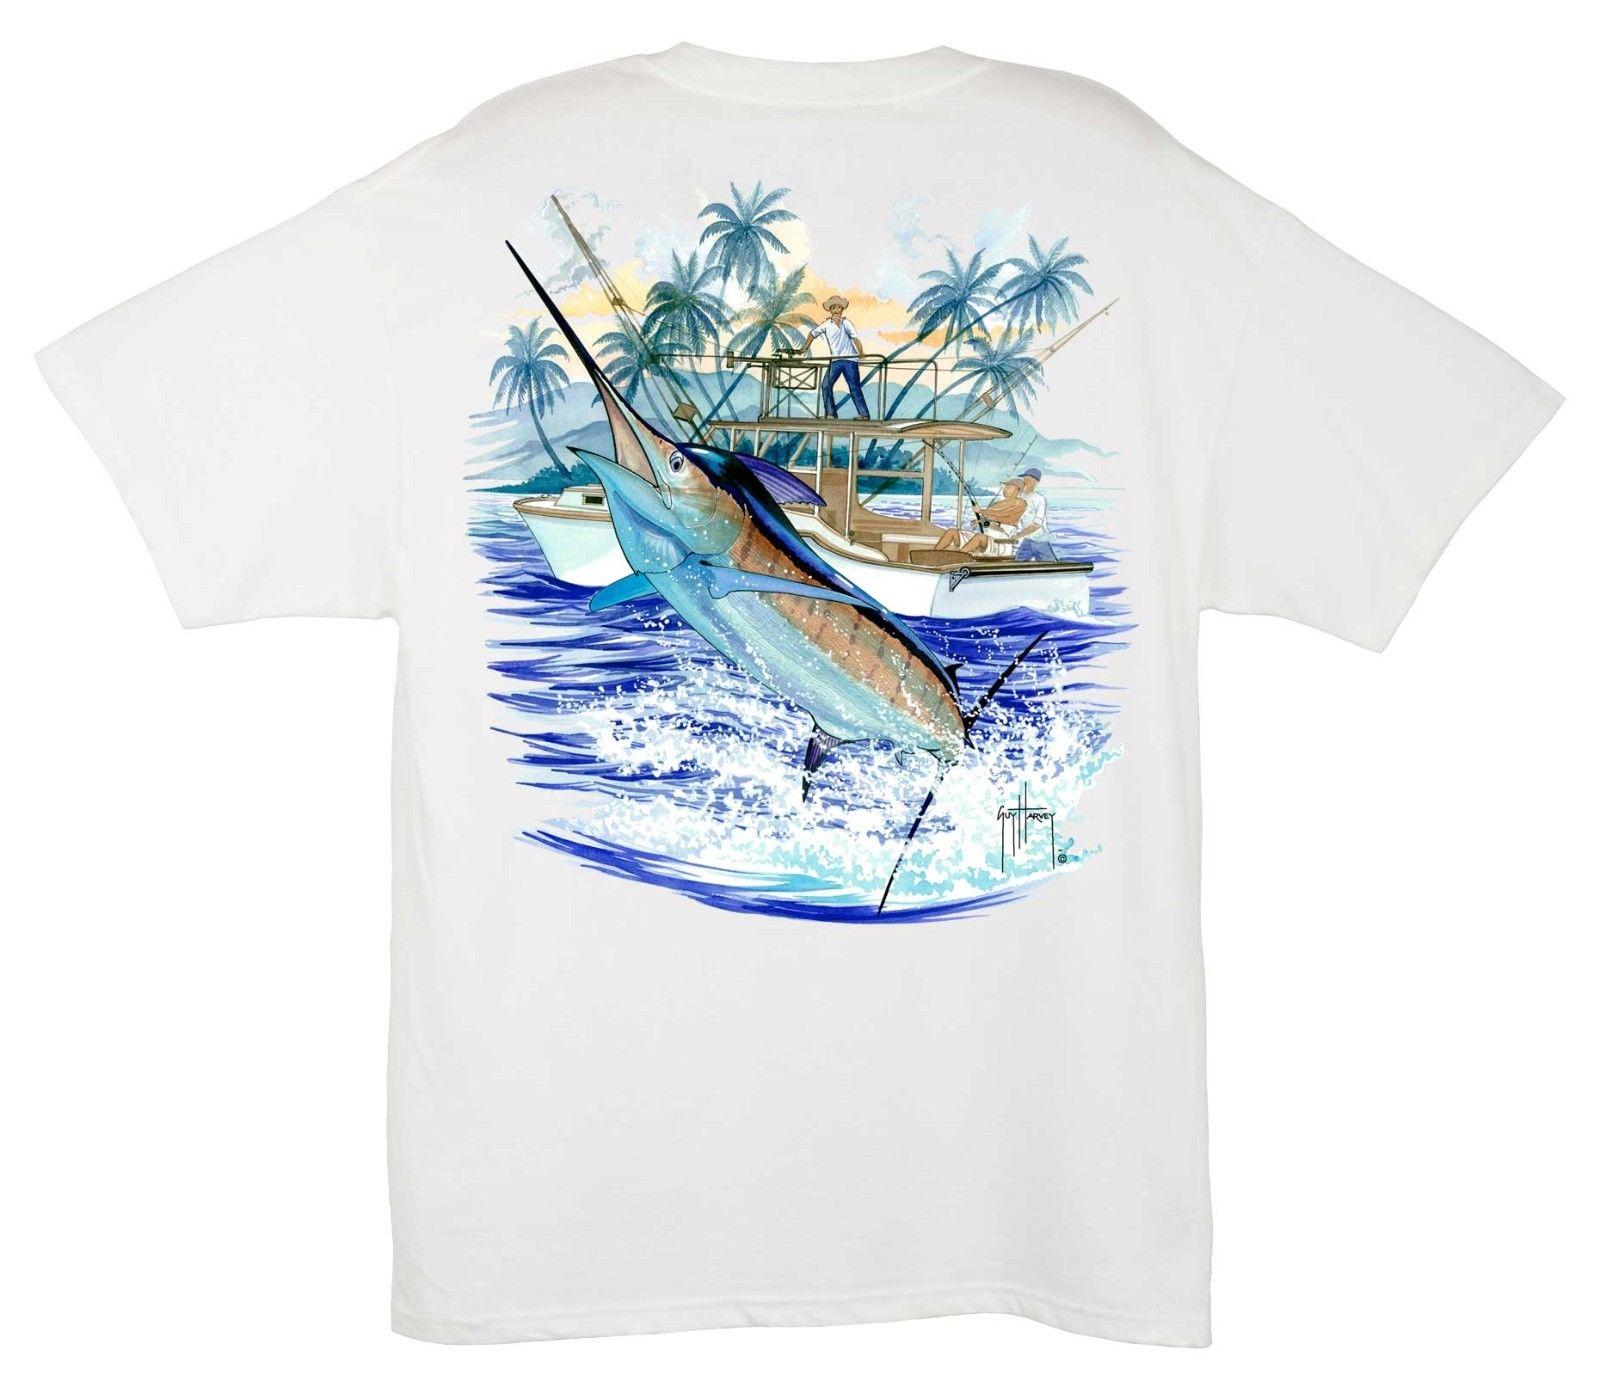 ec3e4bd0a4bb1 Guy Harvey Men s Marlin and Boat 2 Fishing Pocket T-shirt. Pick  Size...White..3X Funny free shipping Unisex Casual Tshirt top